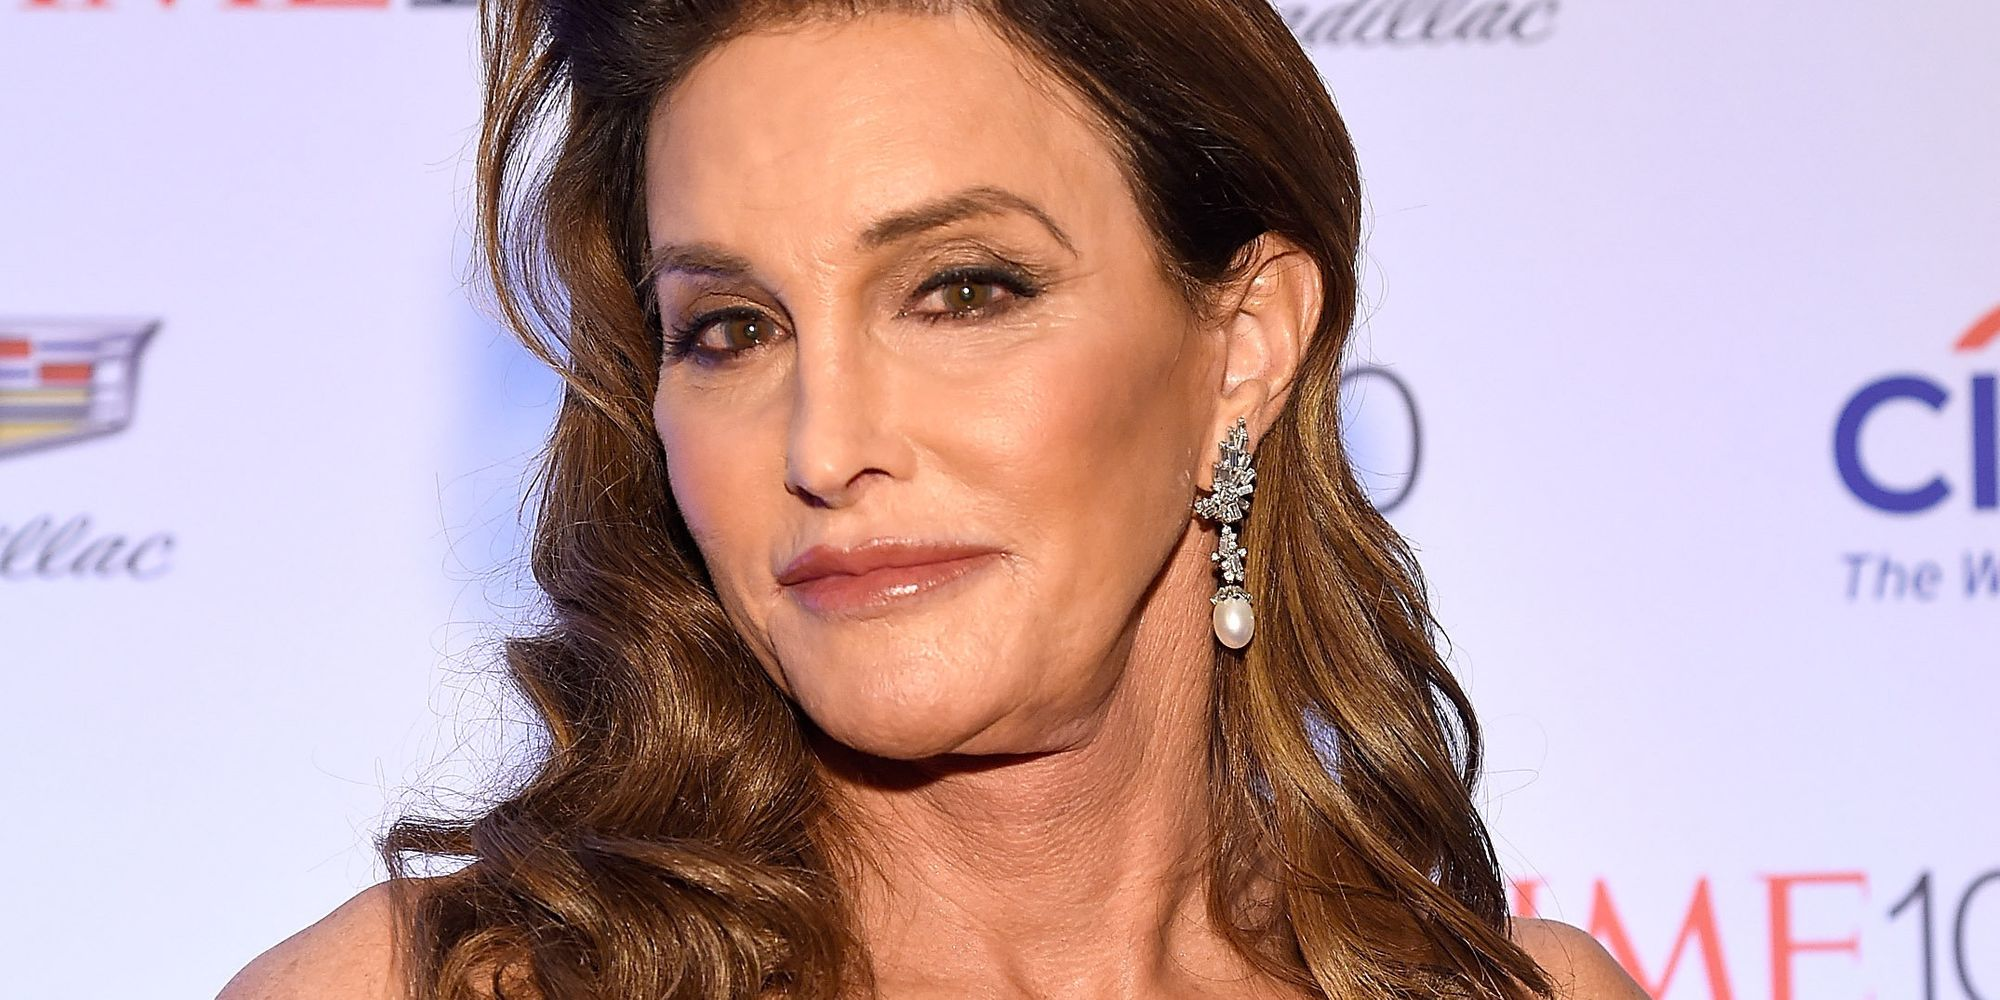 Caitlyn Jenner 'To Pose Nude For Sports Illustrated', To Mark Olympics Anniversary